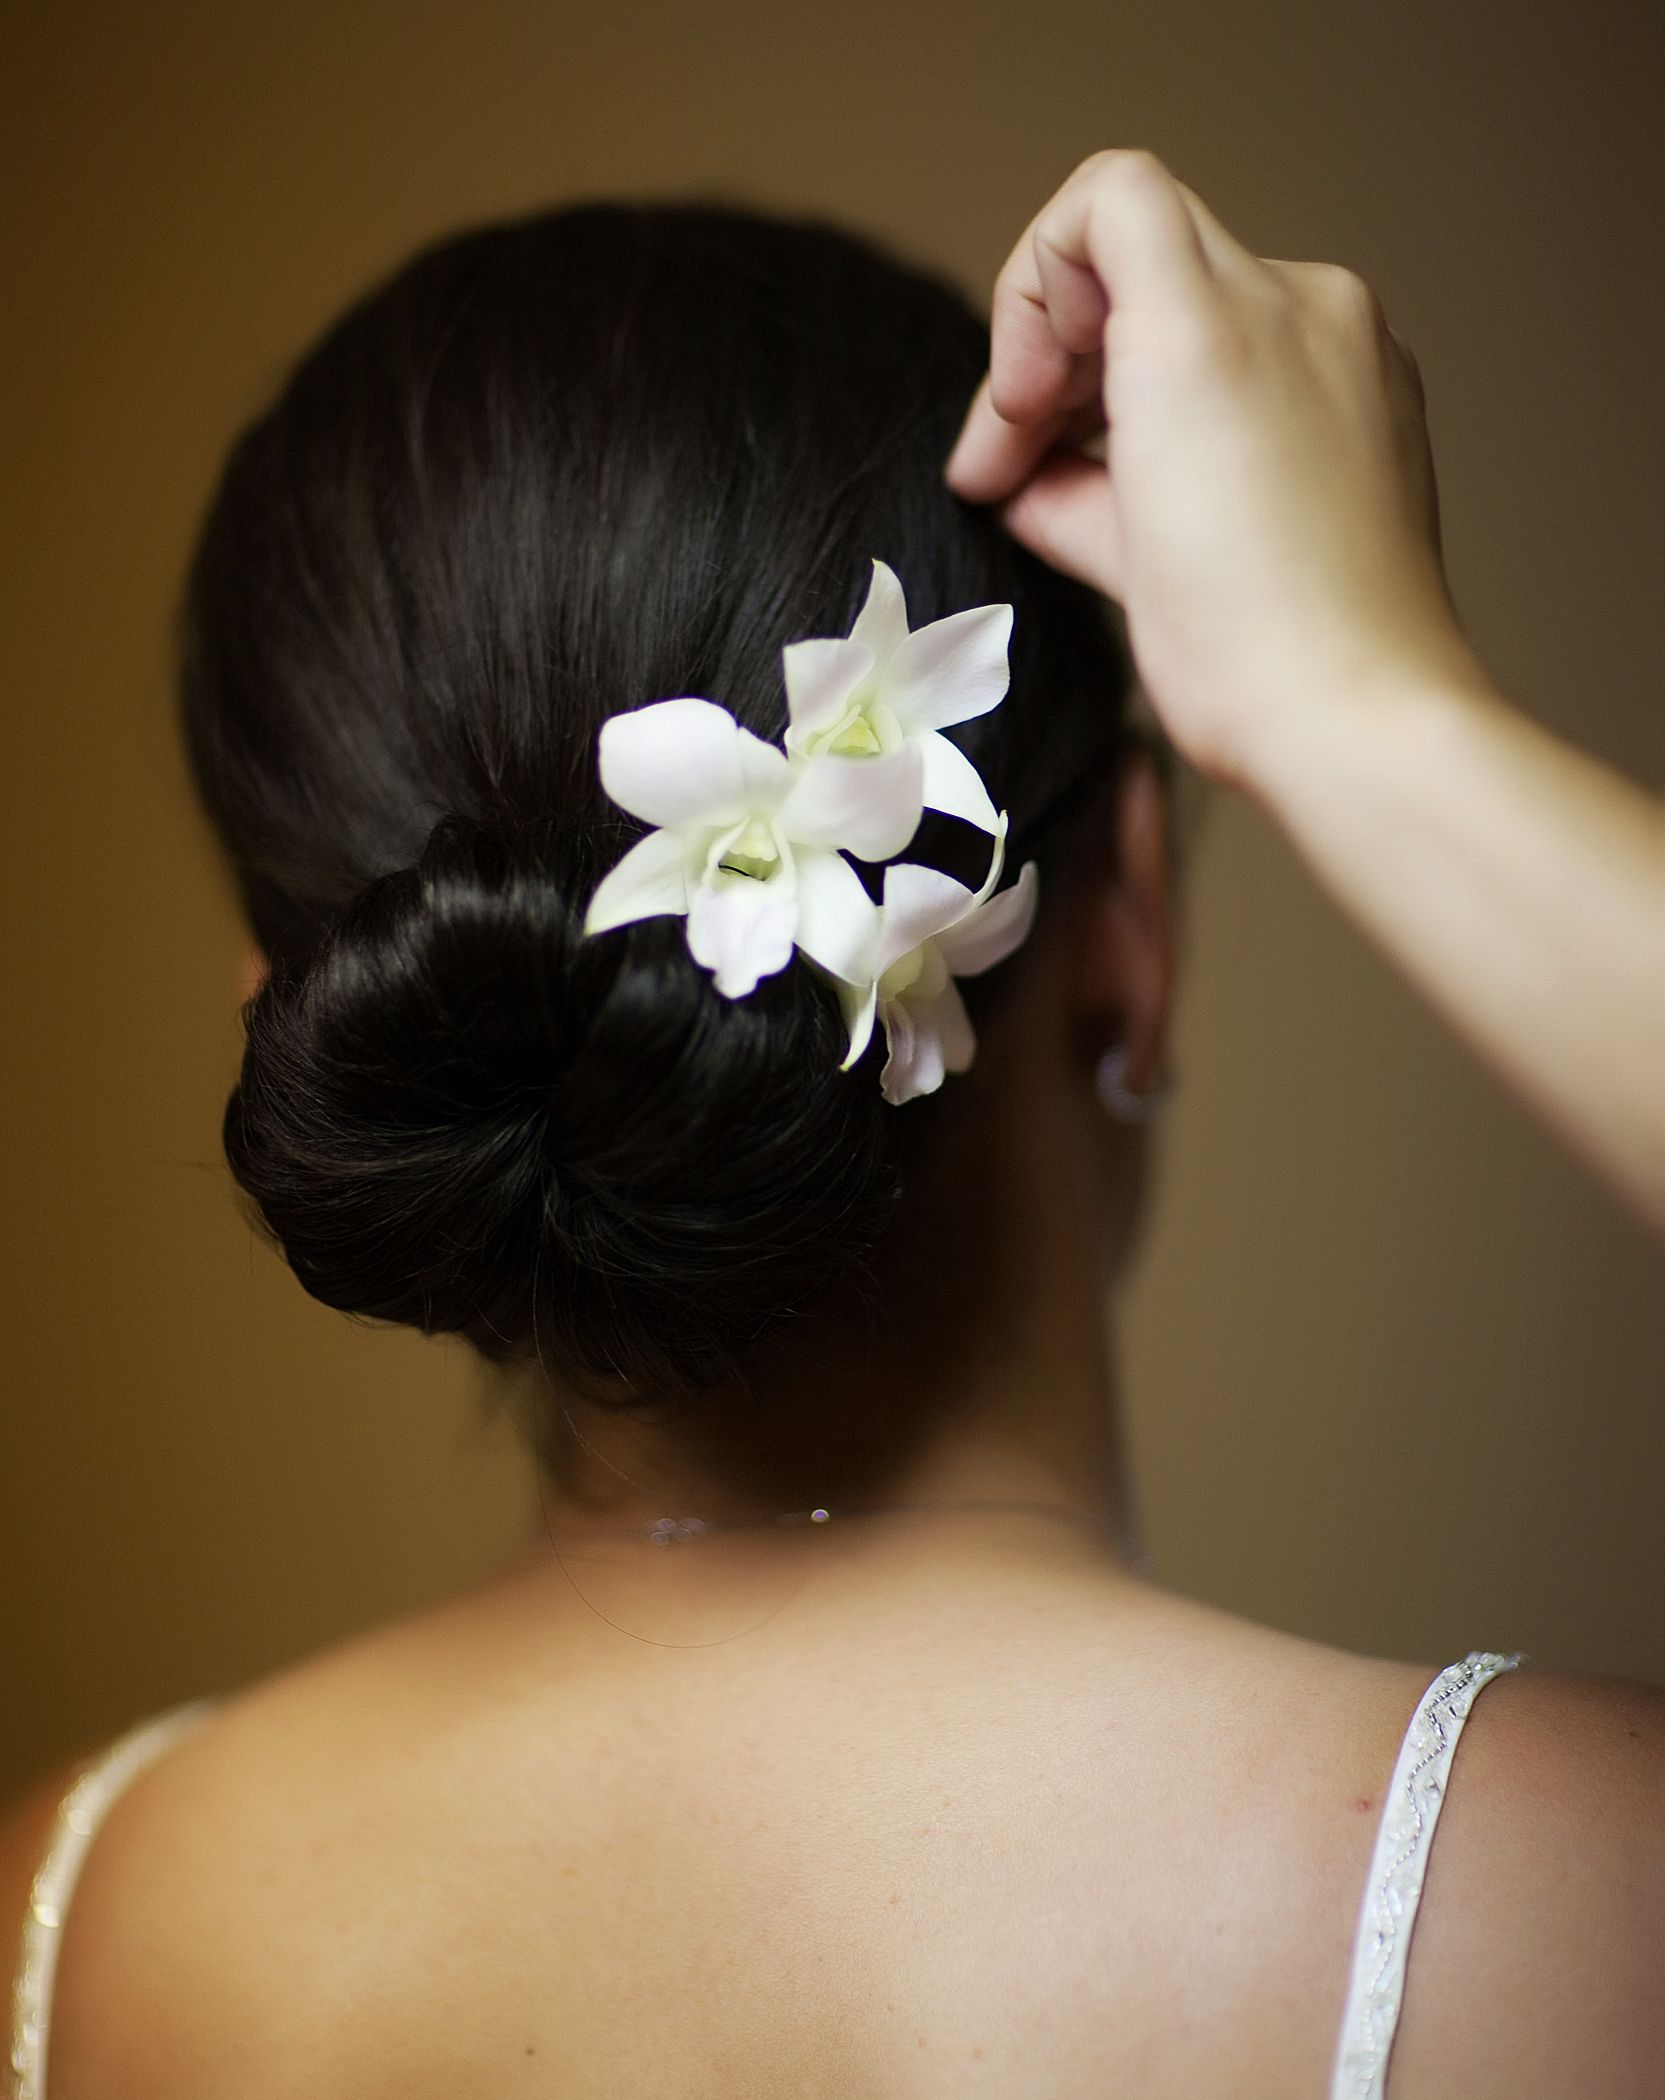 Sophisticated Floral Designs Bridal Flowers Orchid Hair Flowers Bridal Hair